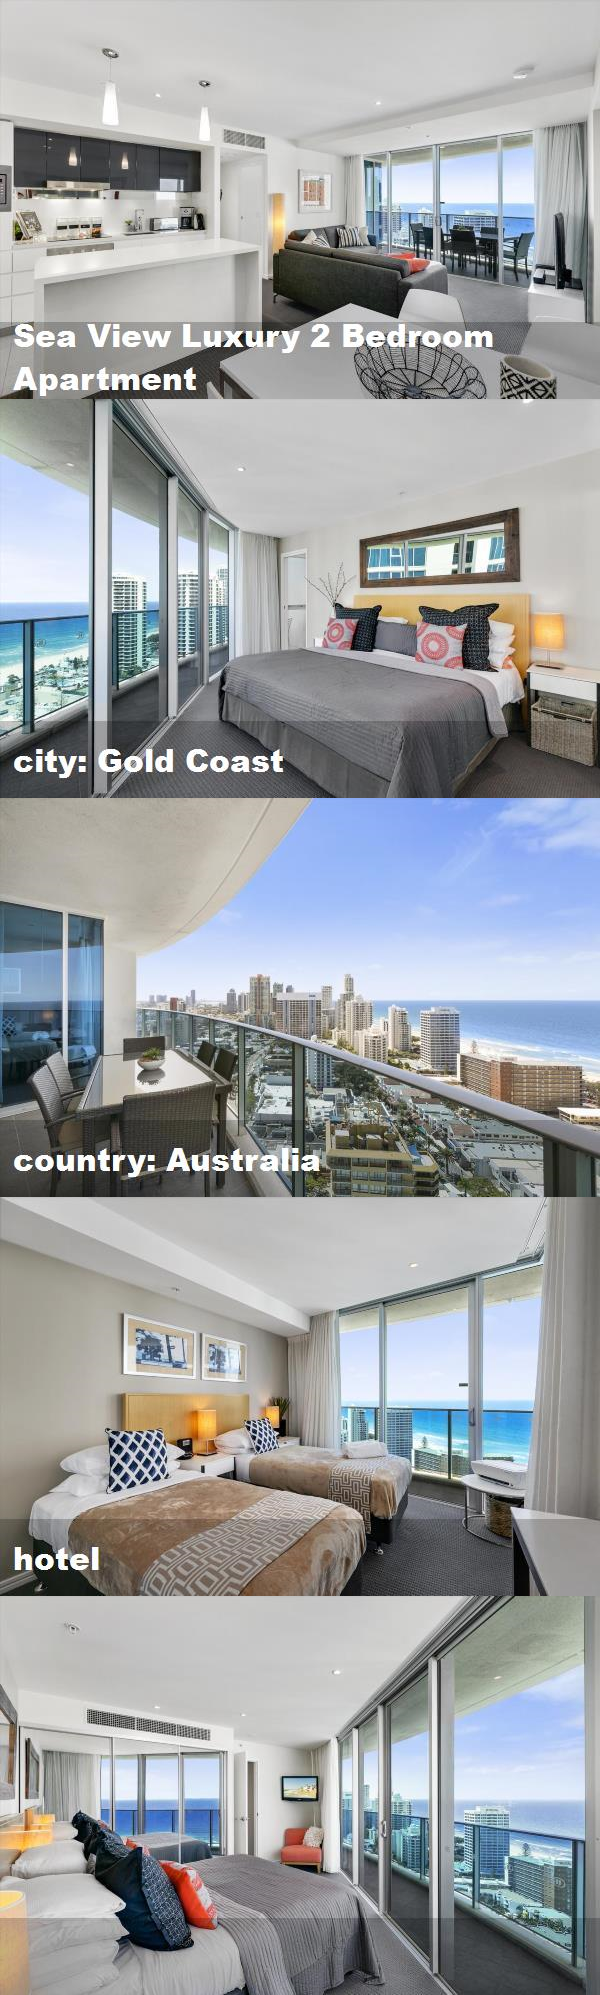 Sea view luxury bedroom apartment city gold coast country